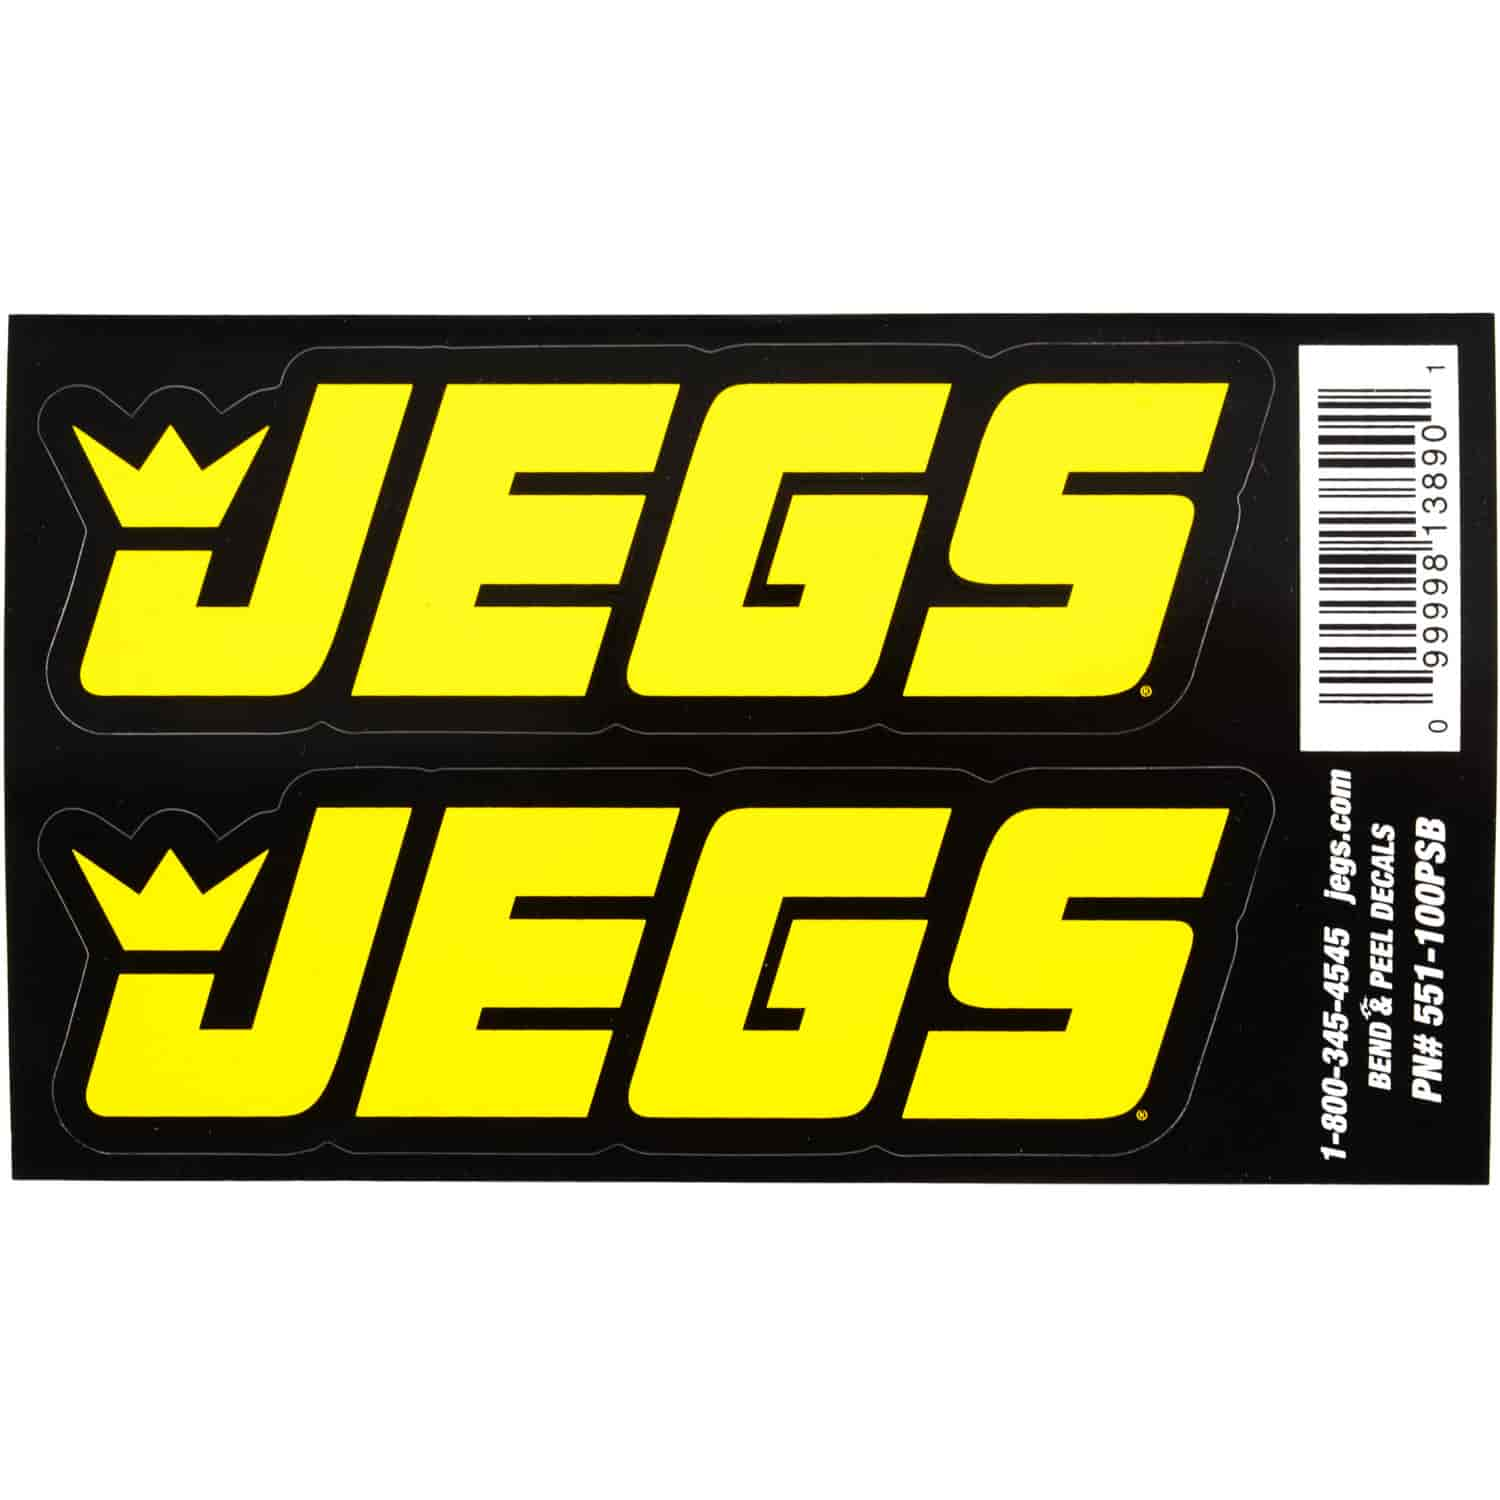 JEGS 100PSB